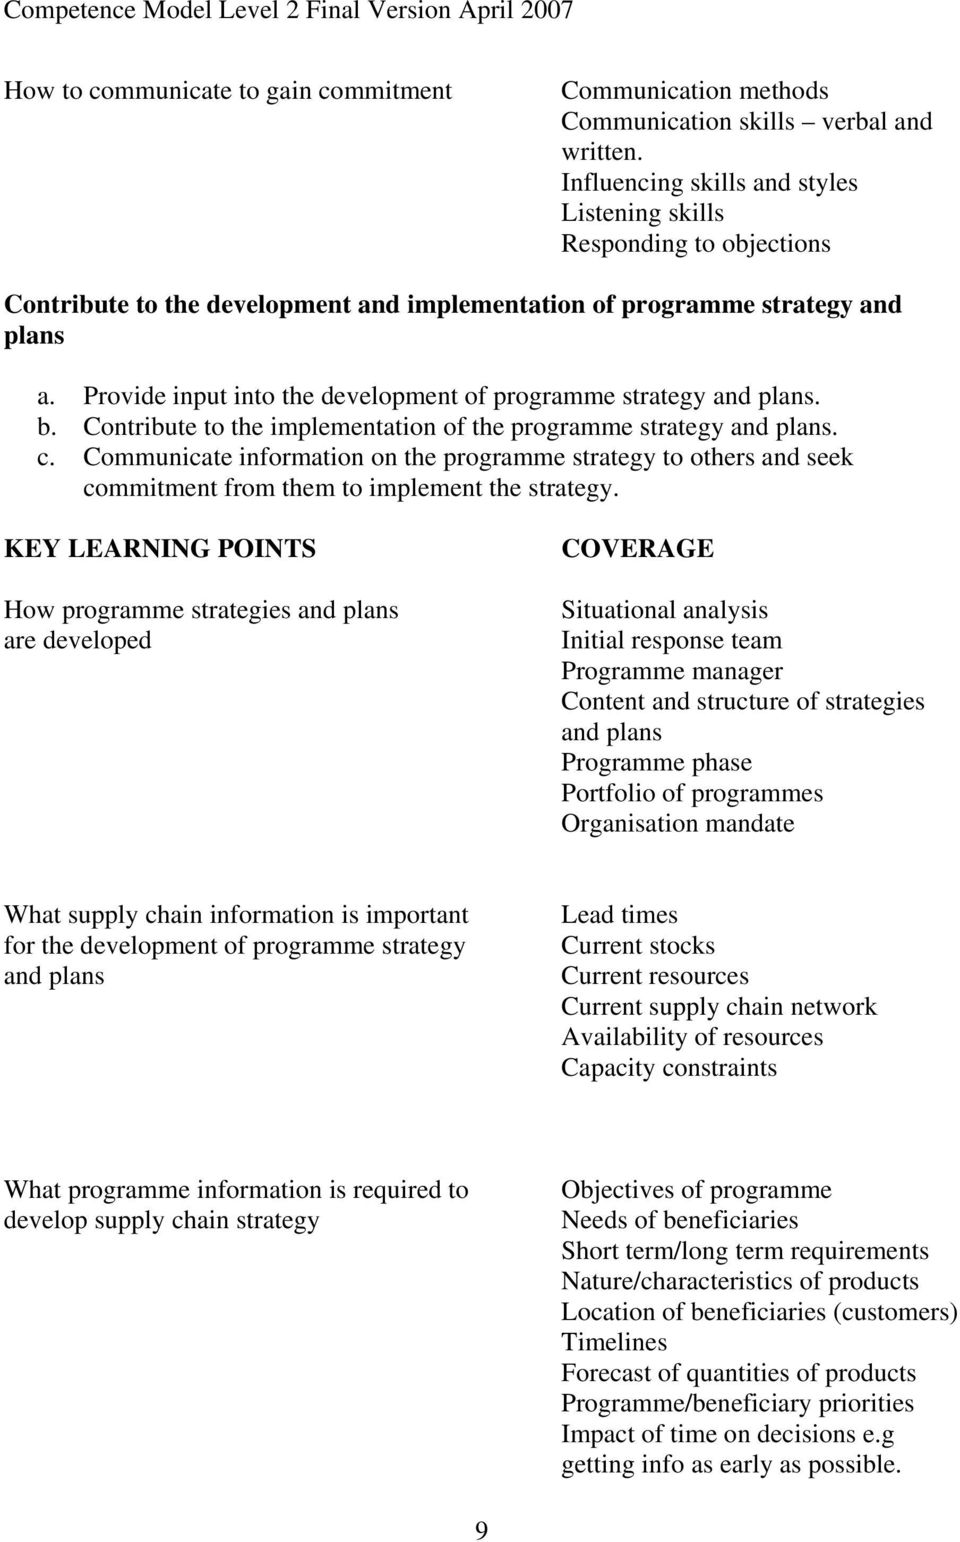 Provide input into the development of programme strategy and plans. b. Contribute to the implementation of the programme strategy and plans. c.